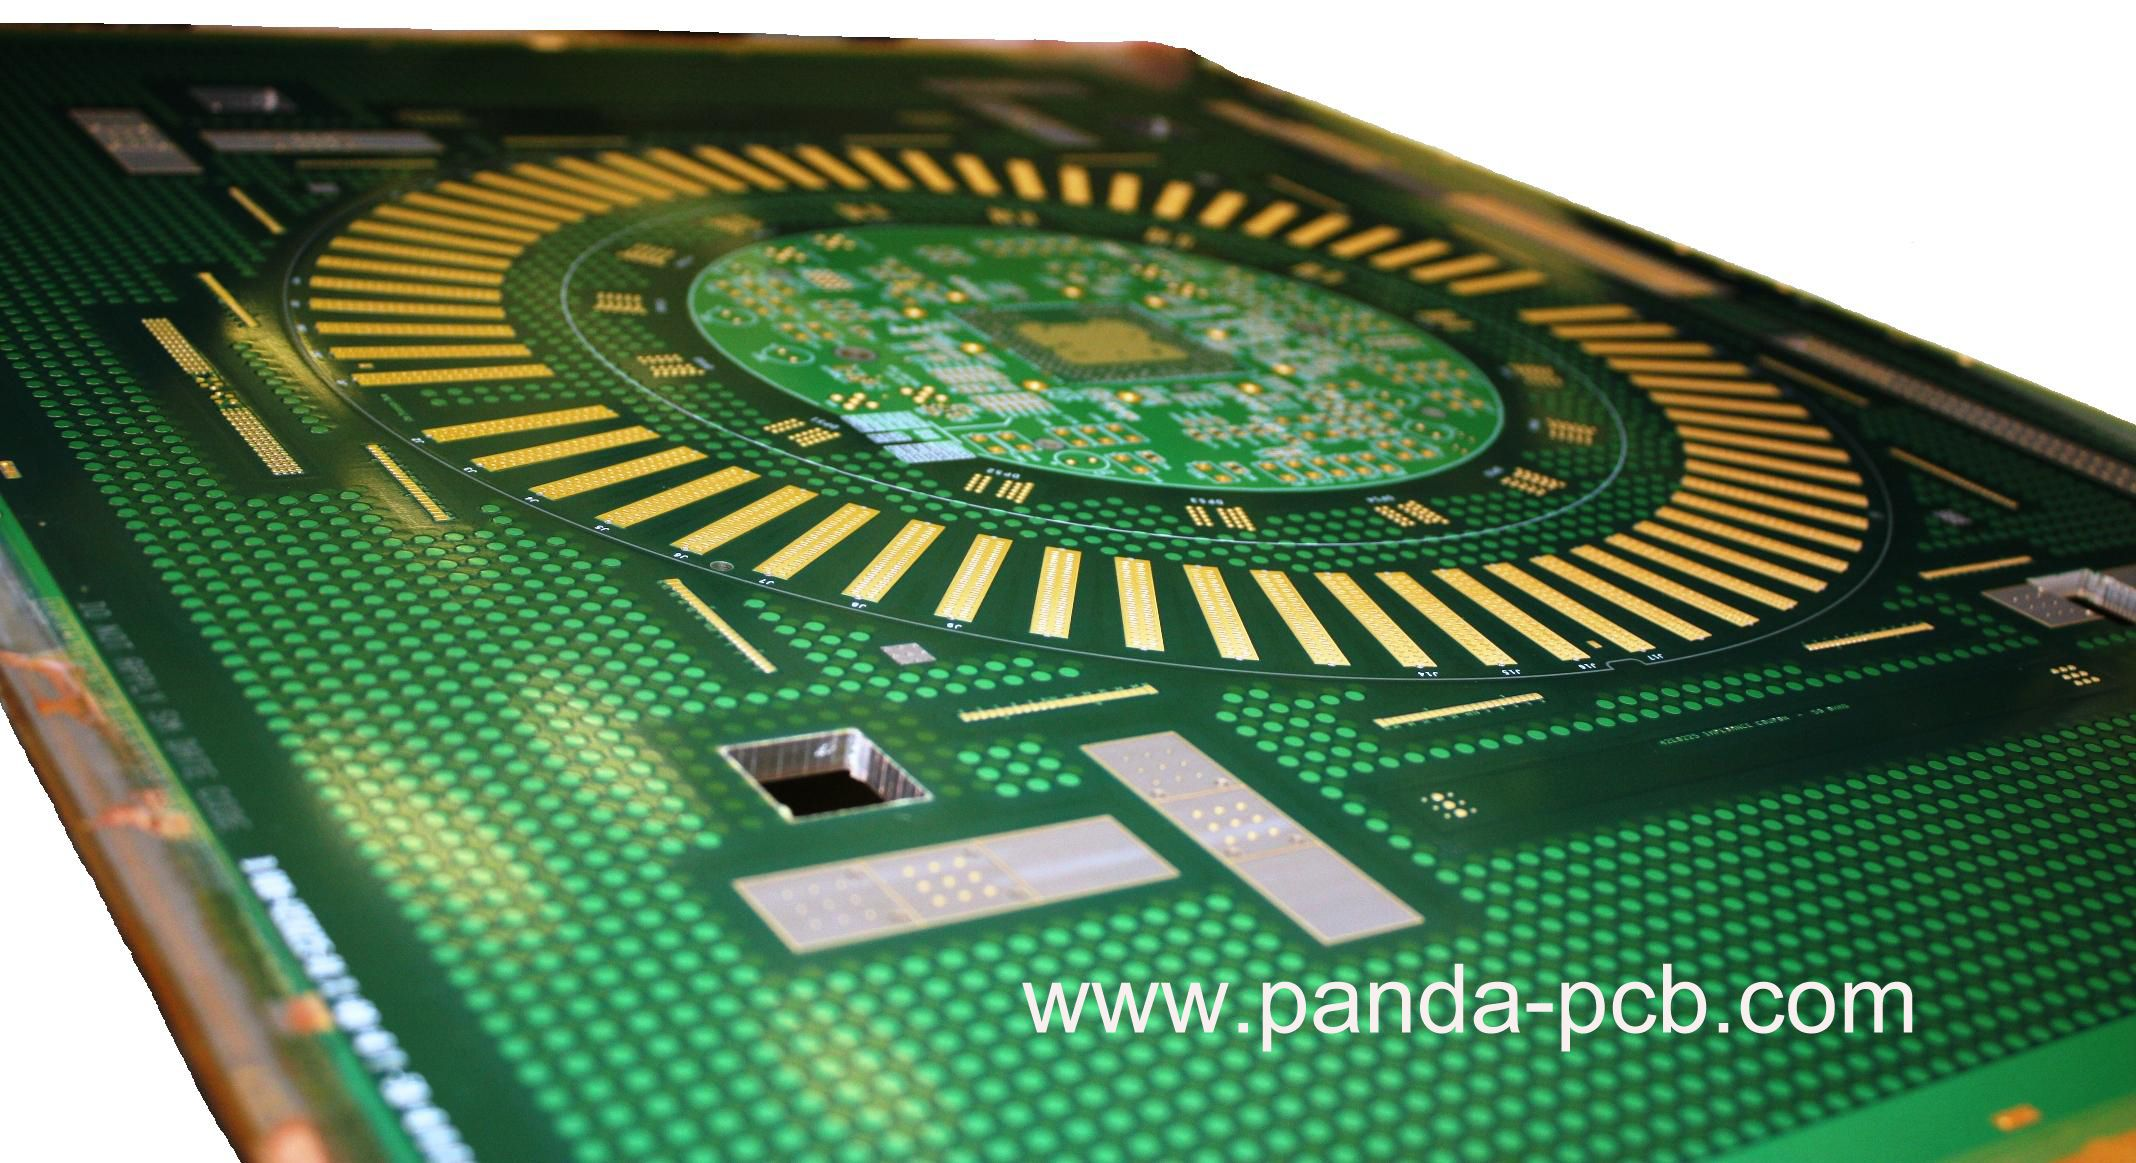 Backplane Pcb Traditionally Most Pcs Have Used Active Backplanes Also Including Consumer Electronics Pcb Ind Circuit Board Printed Circuit Board Pcb Design